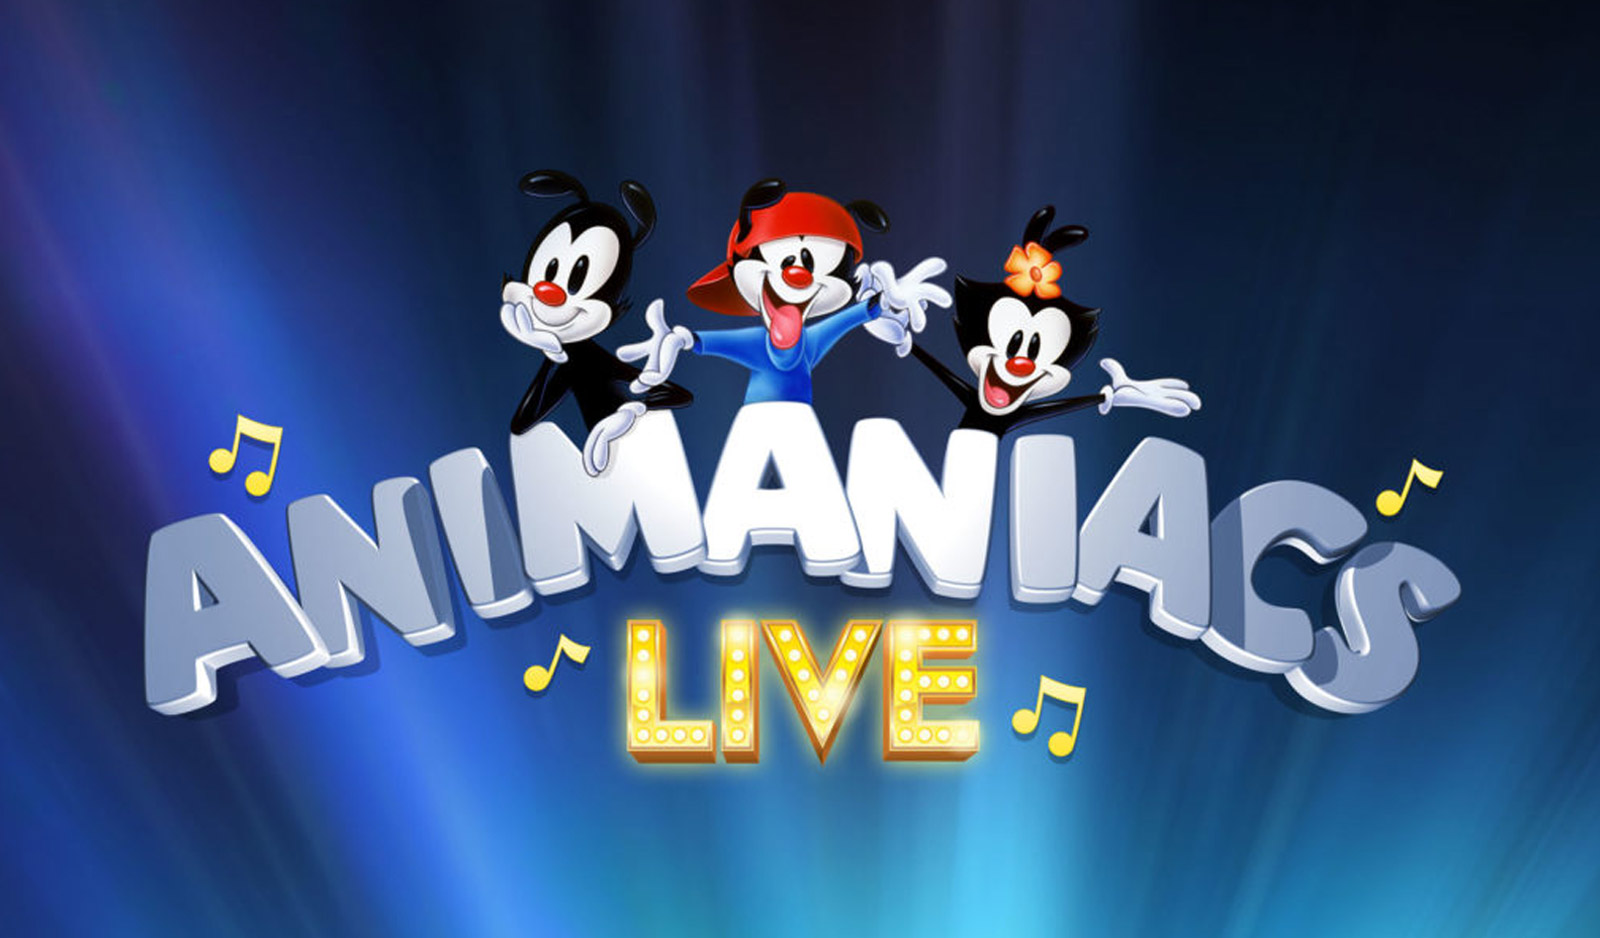 la-mirada-animaniacs-second-show-added